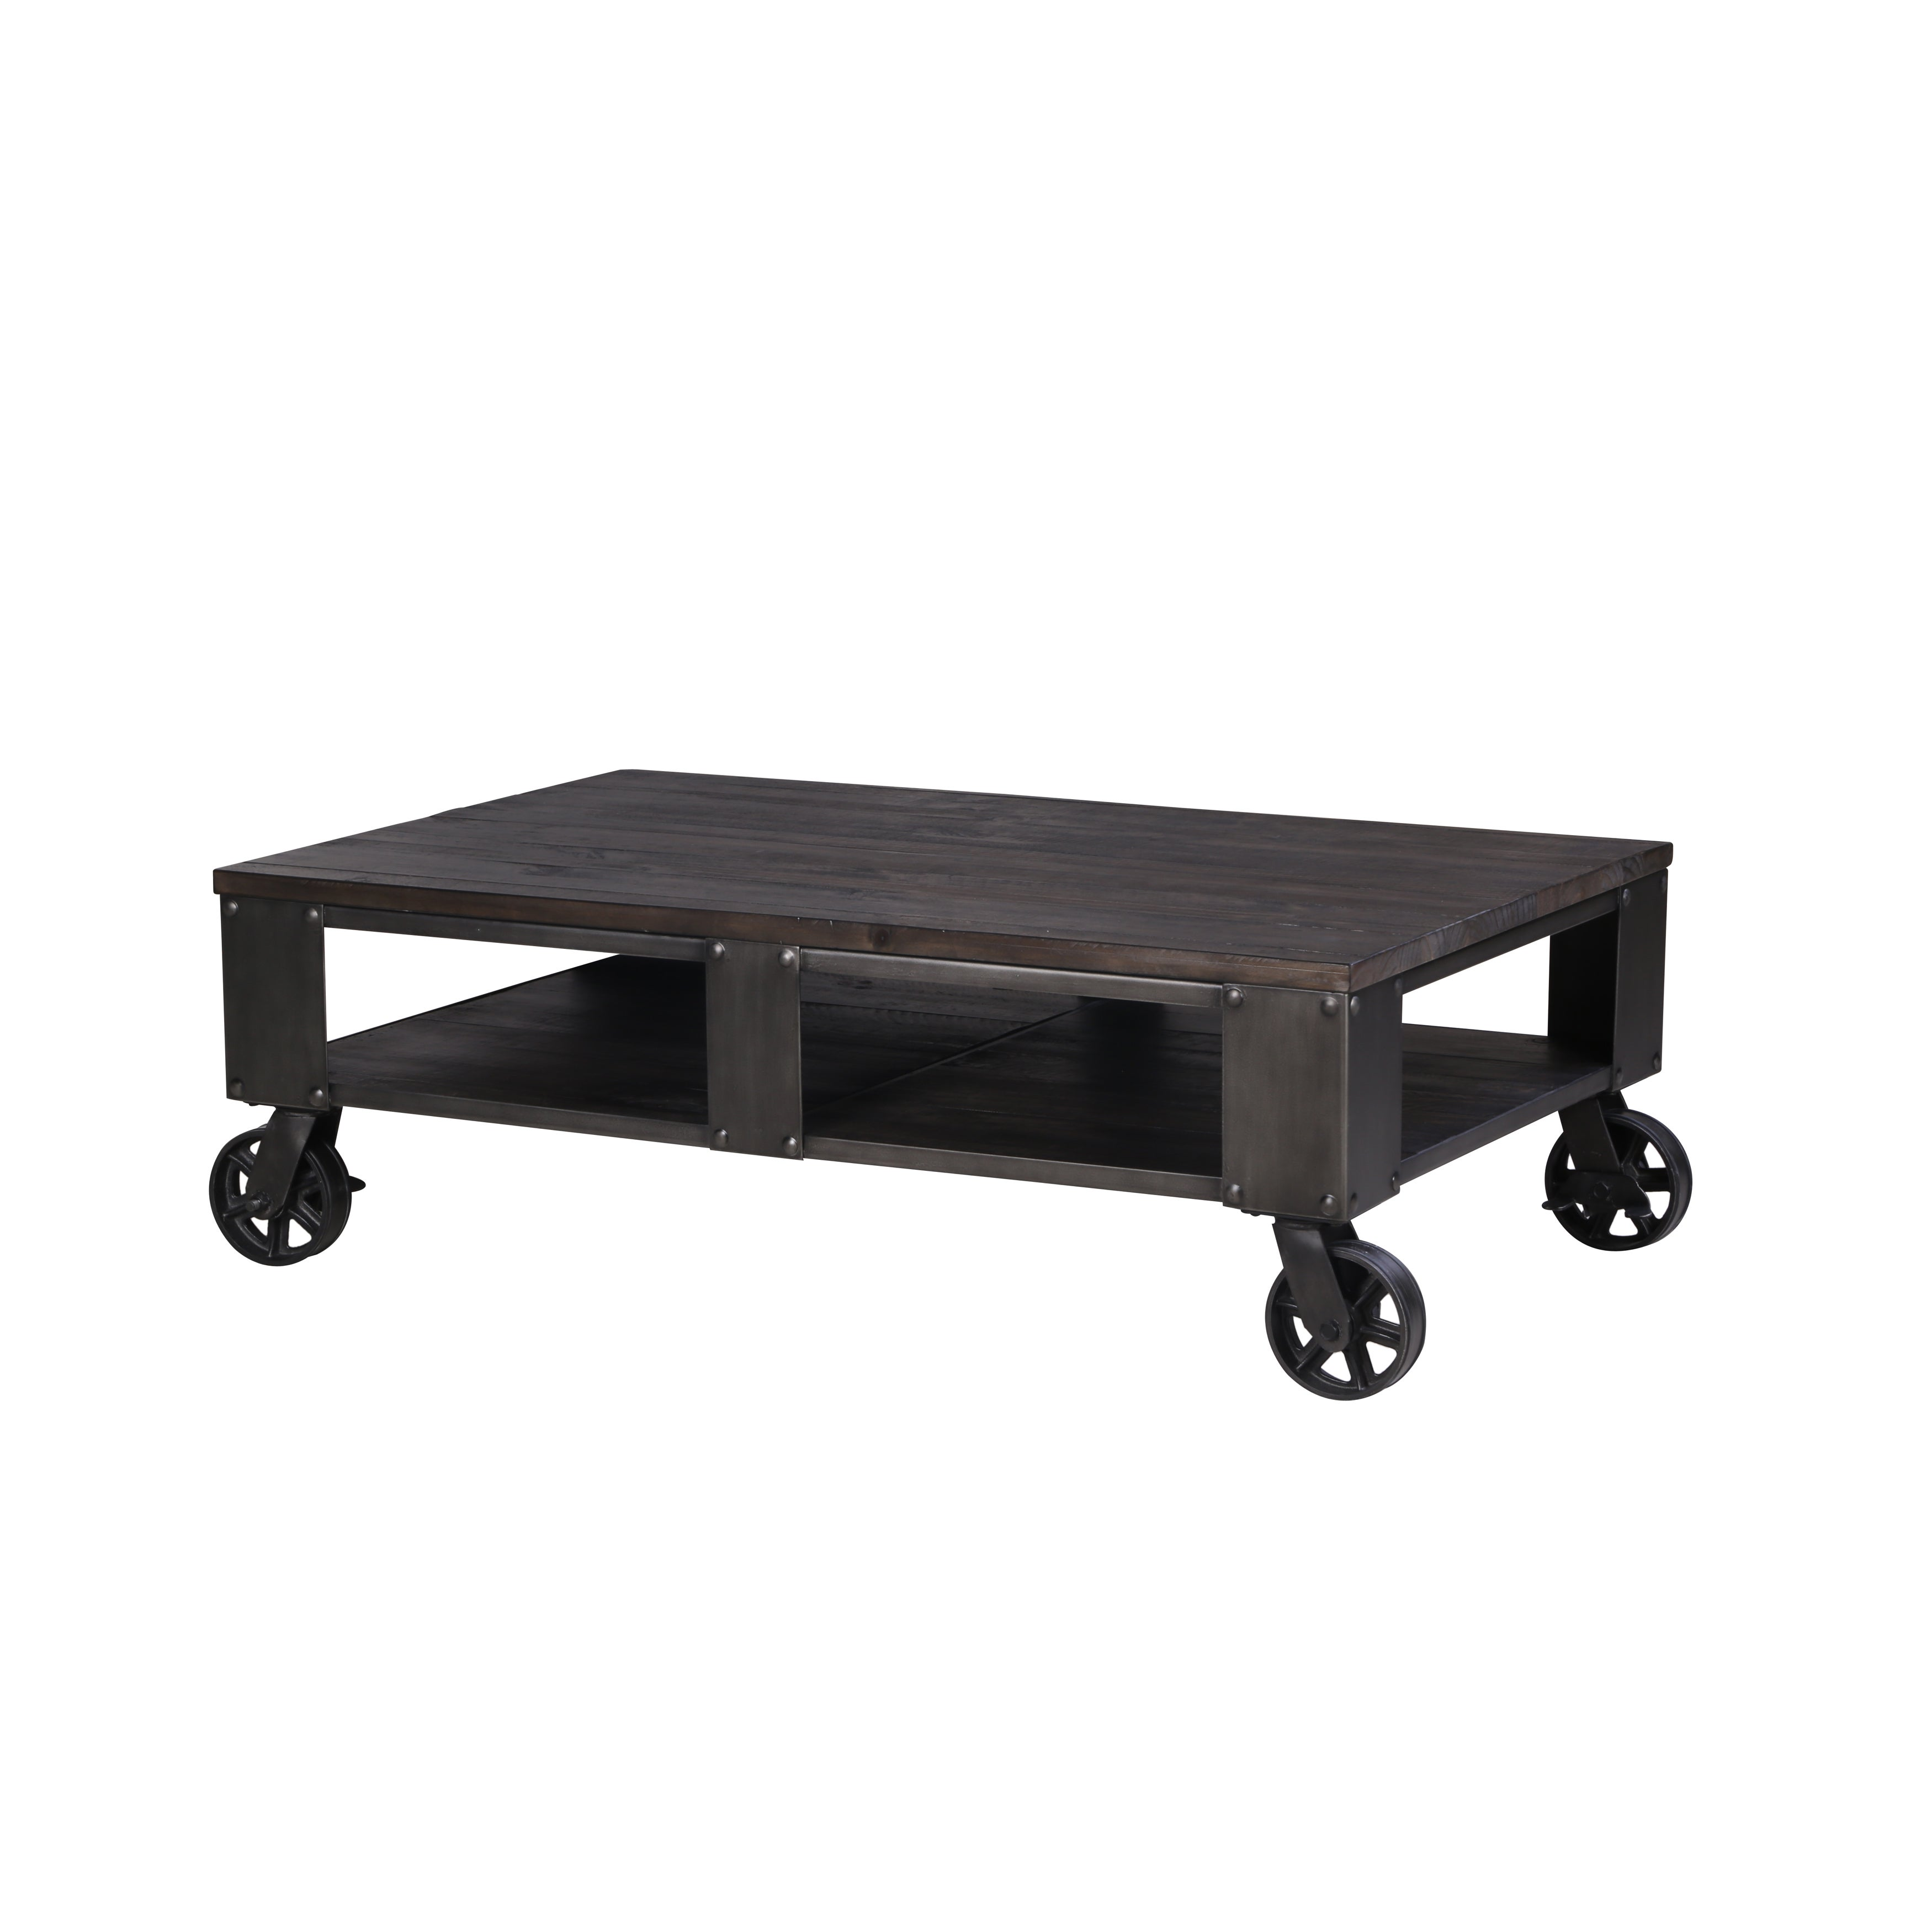 - Shop Milford Industrial Weathered Charcoal Wood And Metal Coffee Table With  Casters - Overstock - 13321549